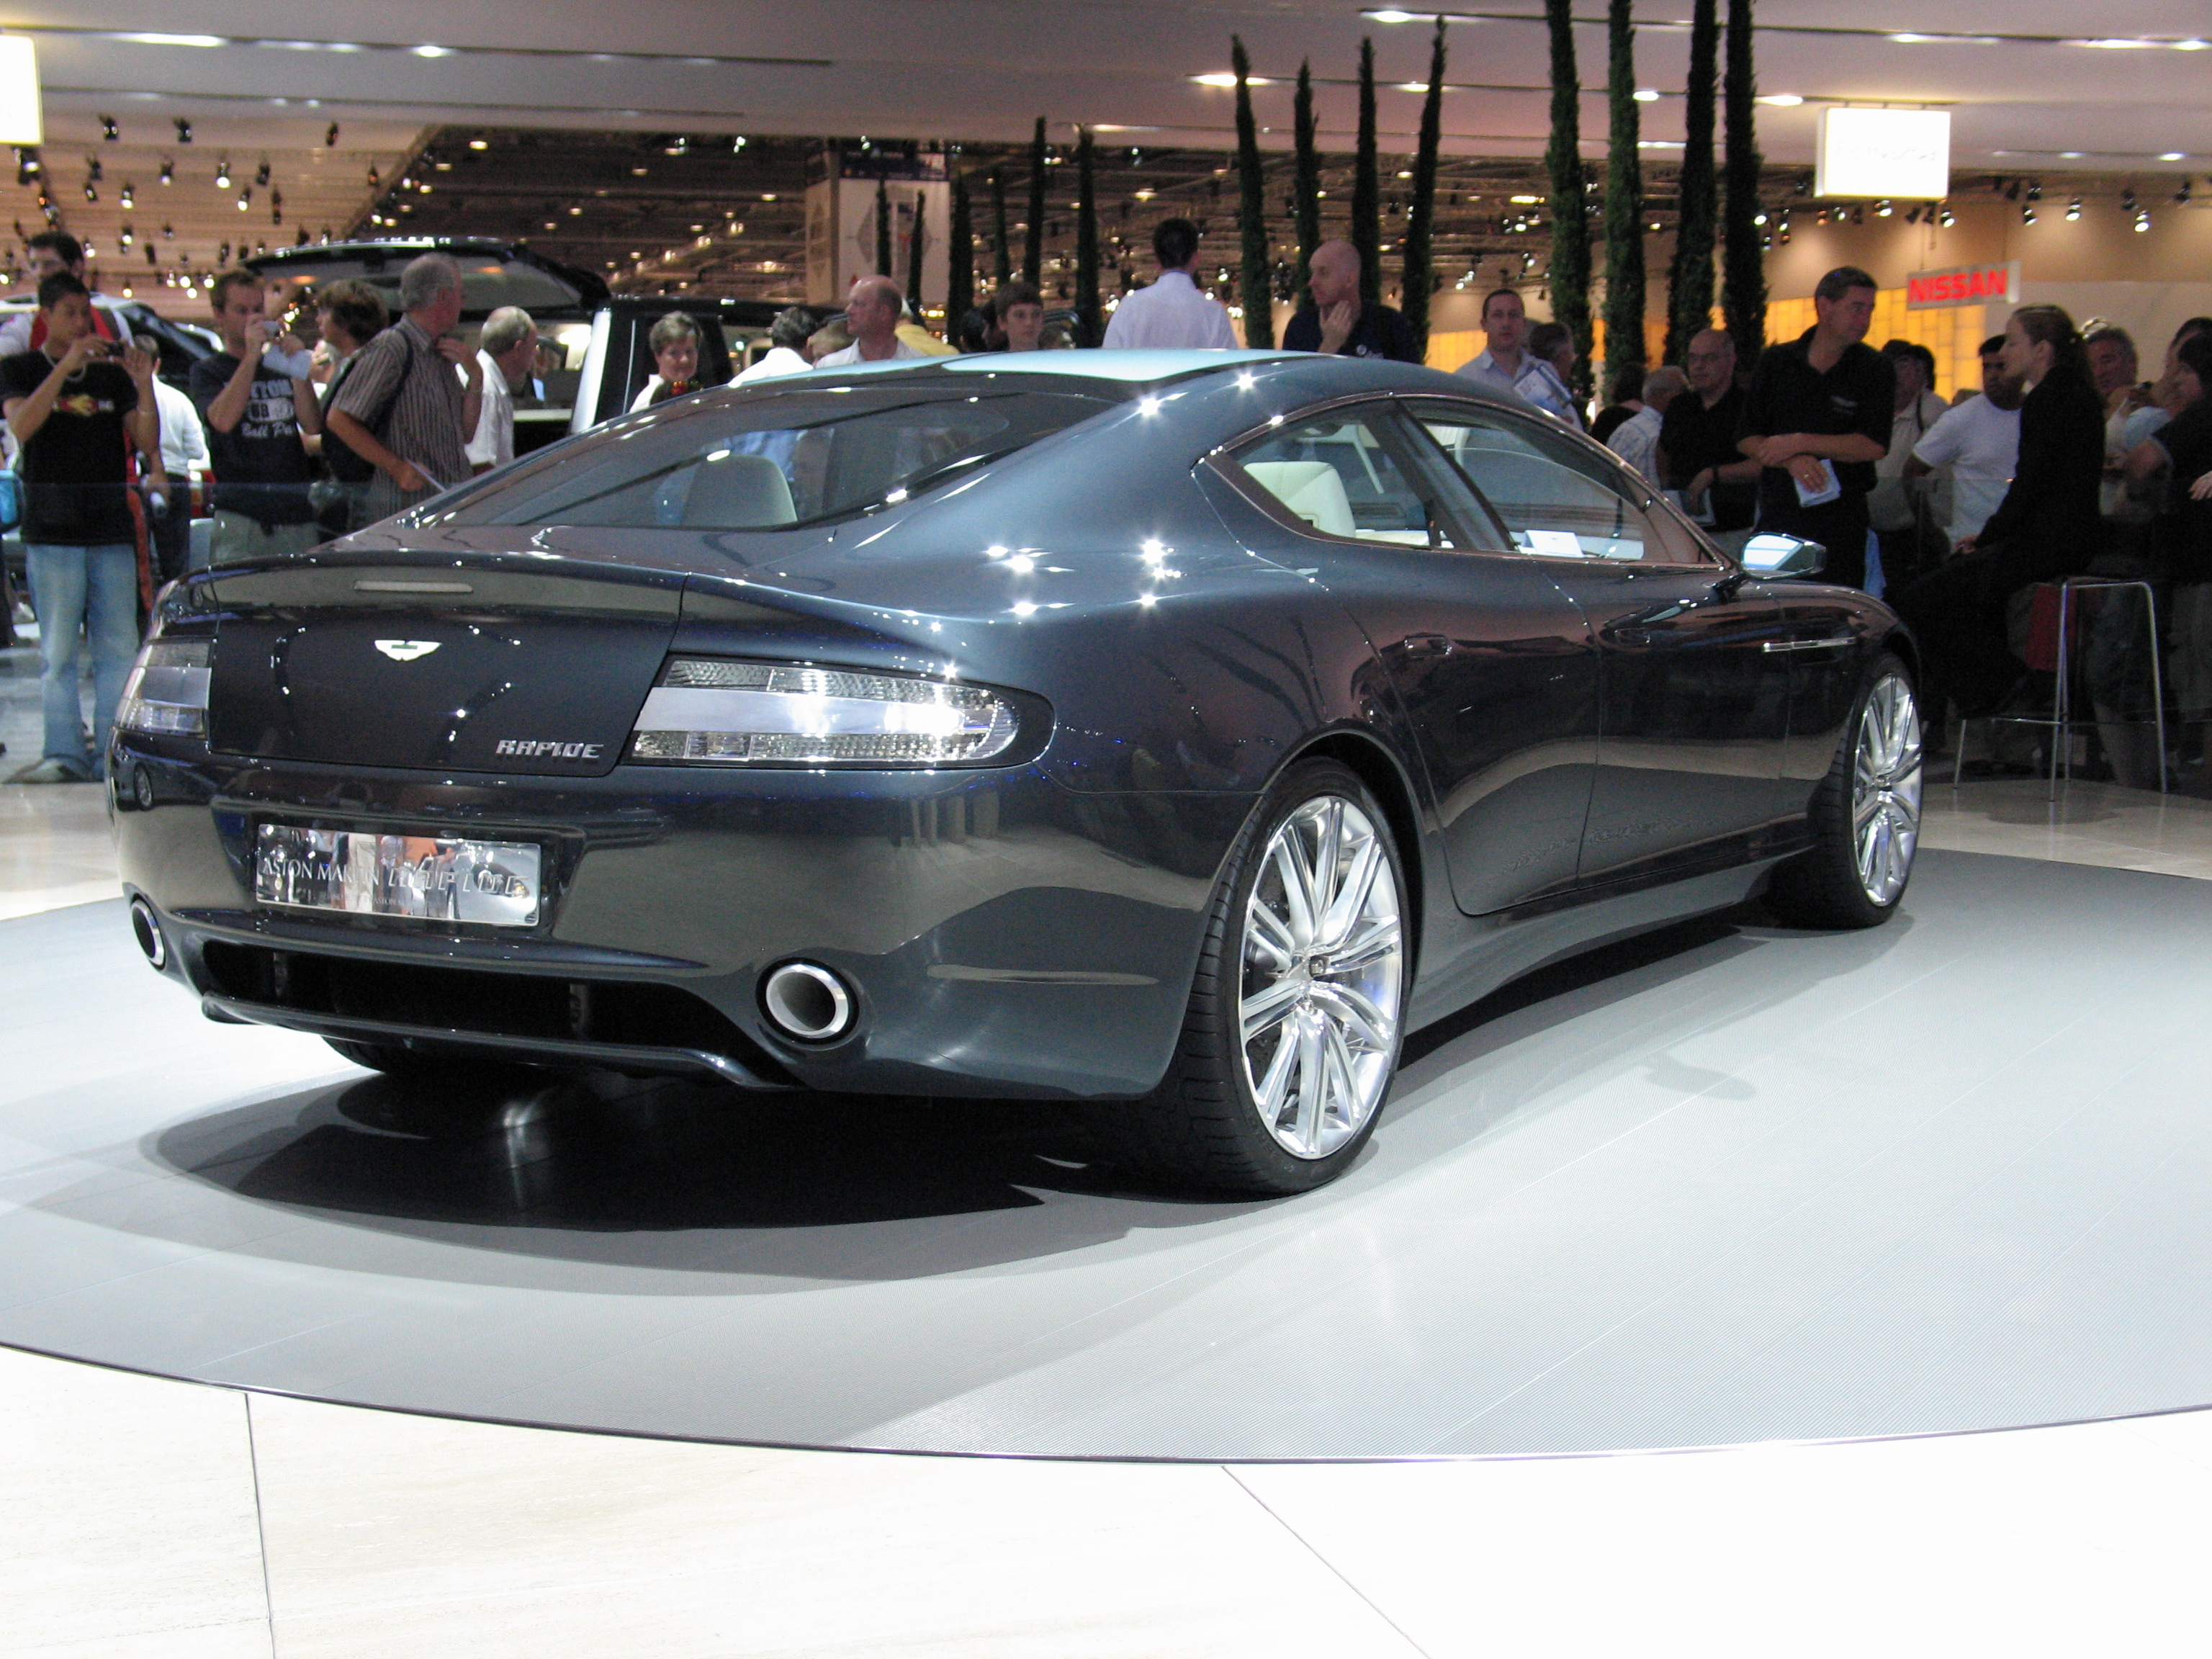 Aston Martin Rapide Related Images Start 350 Weili Automotive Network